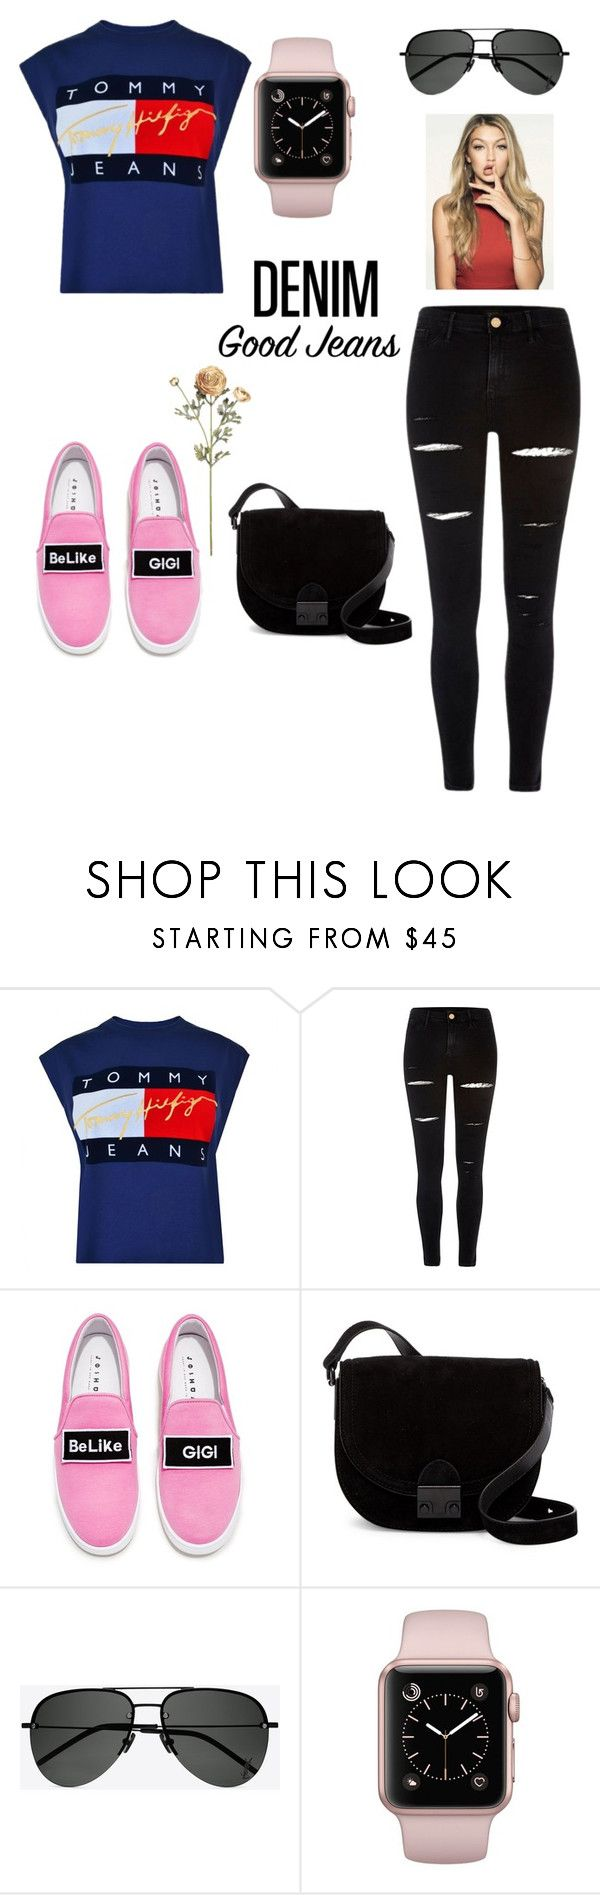 """Untitled #120"" by putrinaini on Polyvore featuring Tommy Hilfiger, River Island, Joshua's, Loeffler Randall and Yves Saint Laurent"